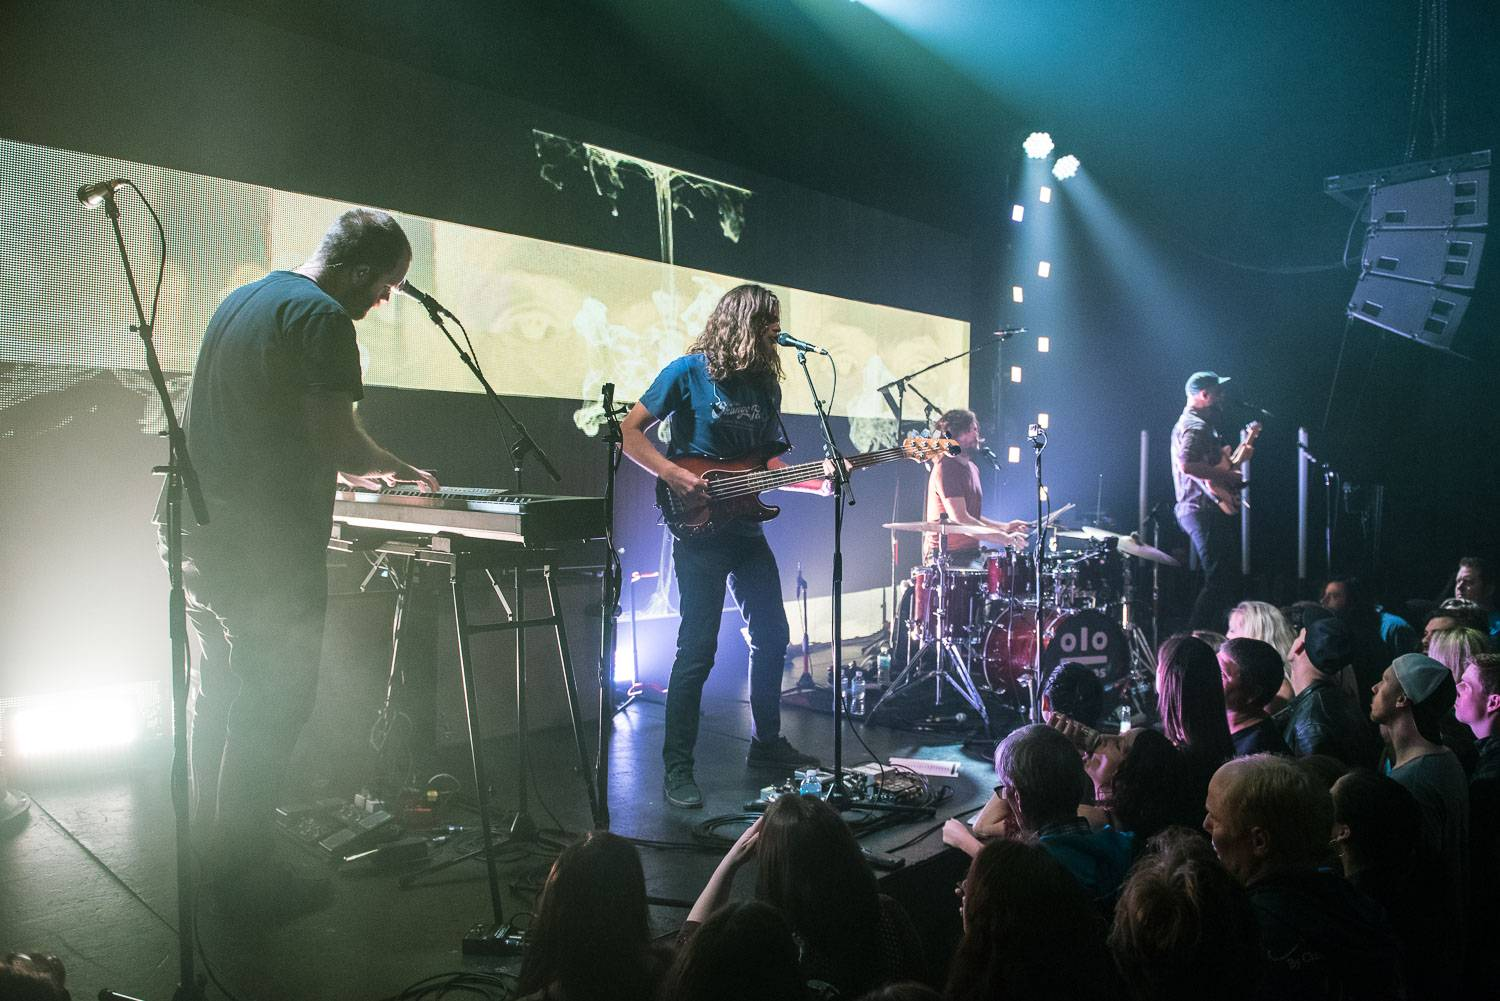 Kongos at the Imperial Nightclub, Vancouver, May 16 2016. Pavel Boiko photo.